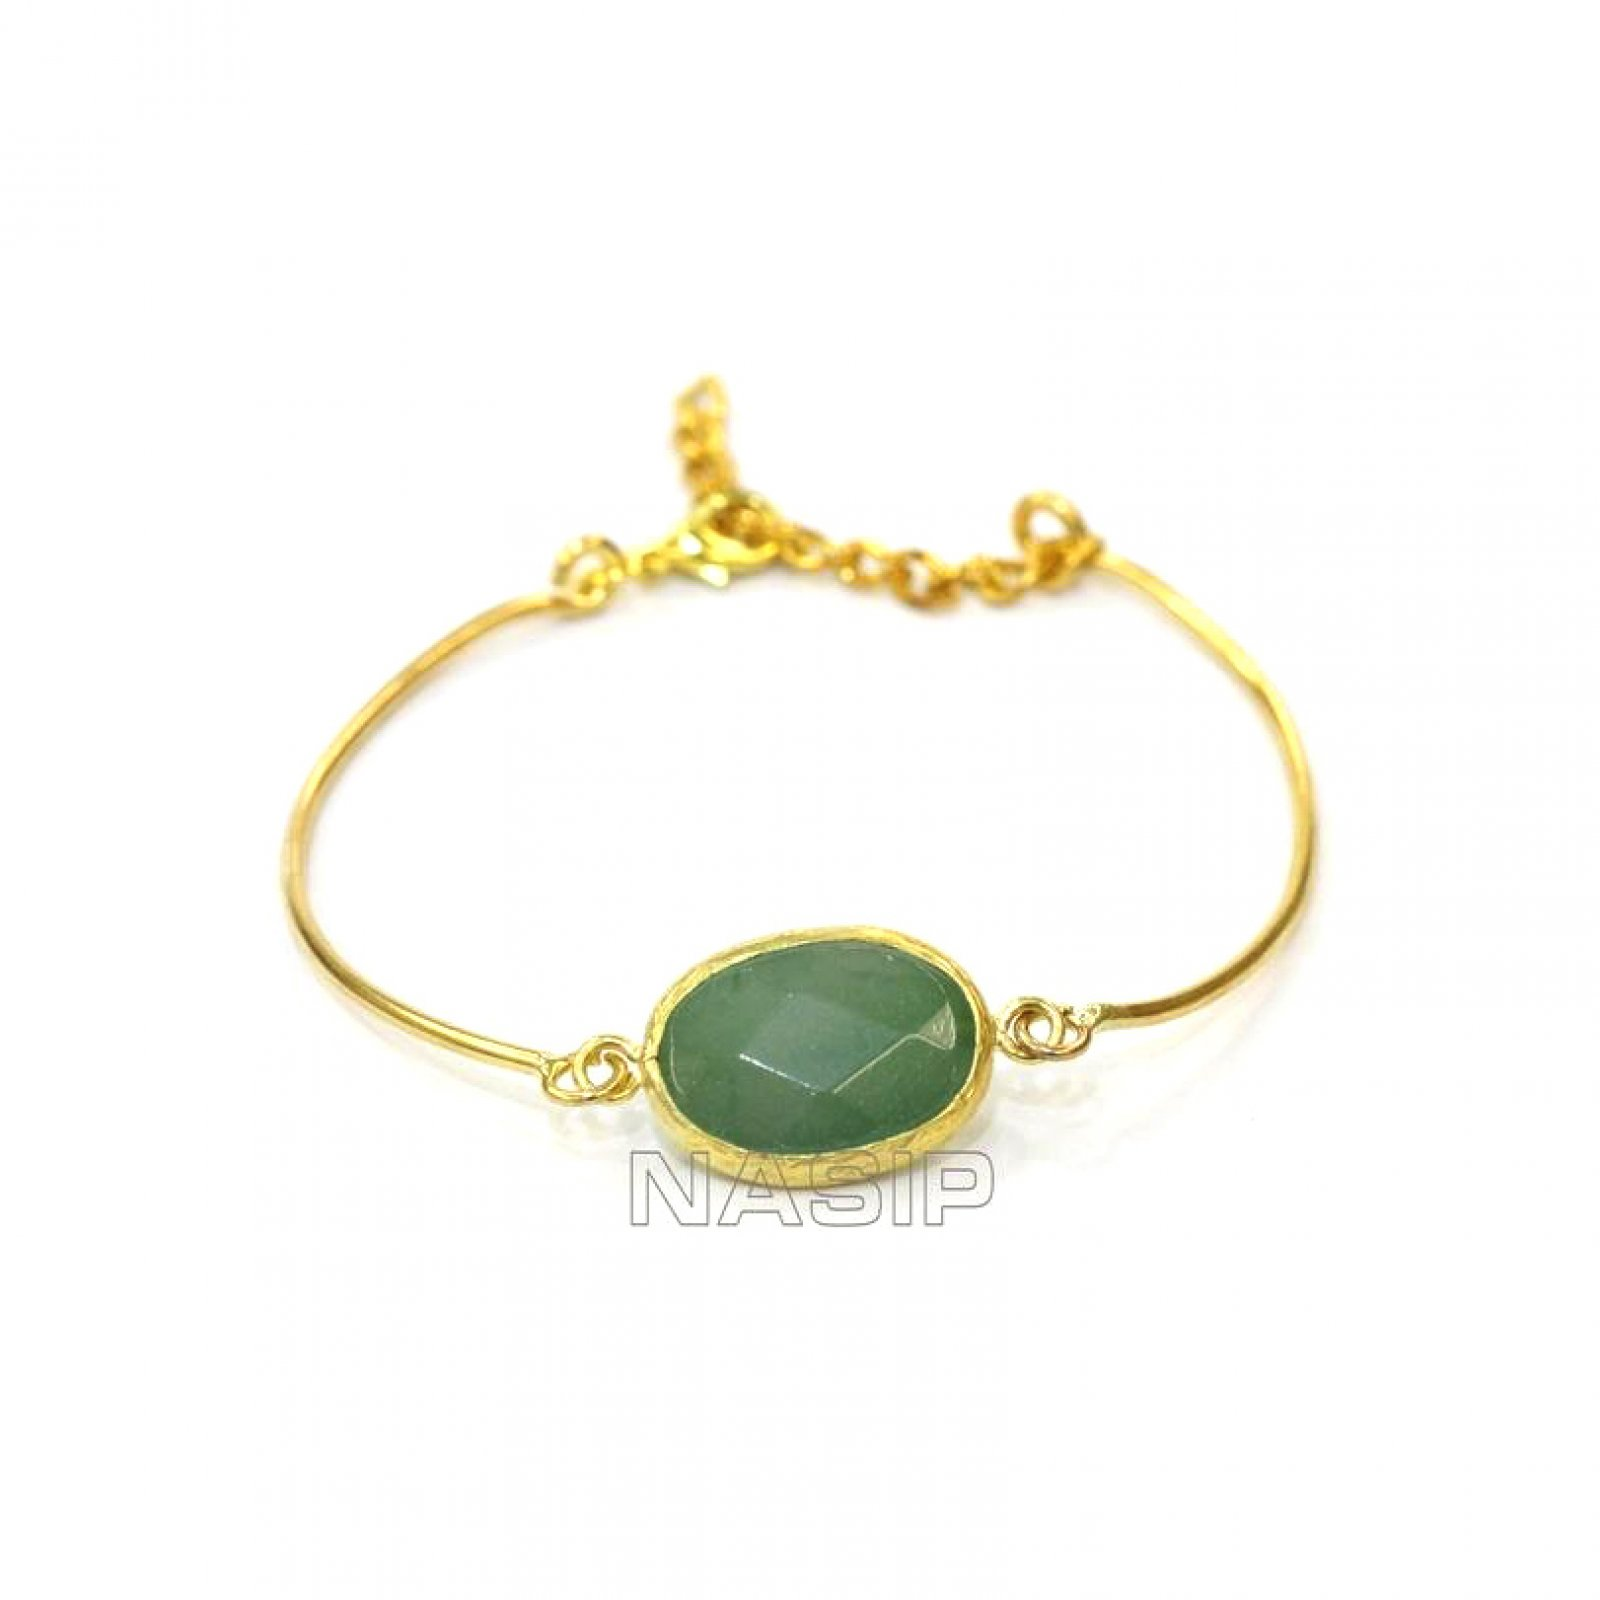 GB552 - GOLD PLATED HANDMADE BRACELET